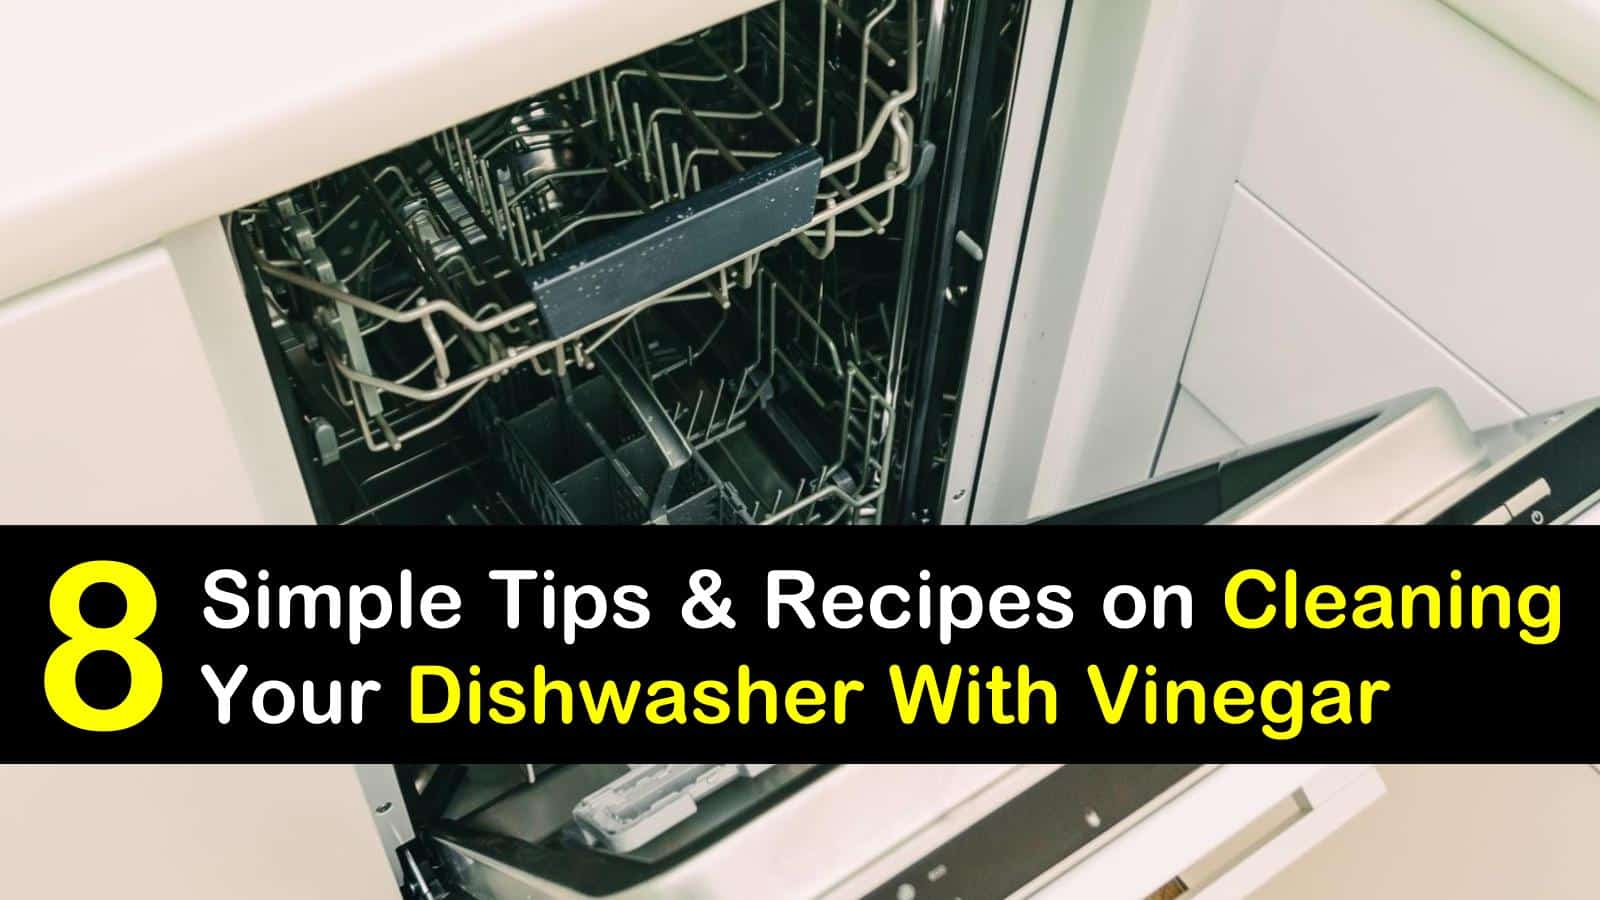 cleaning dishwasher with vinegar titleimg1